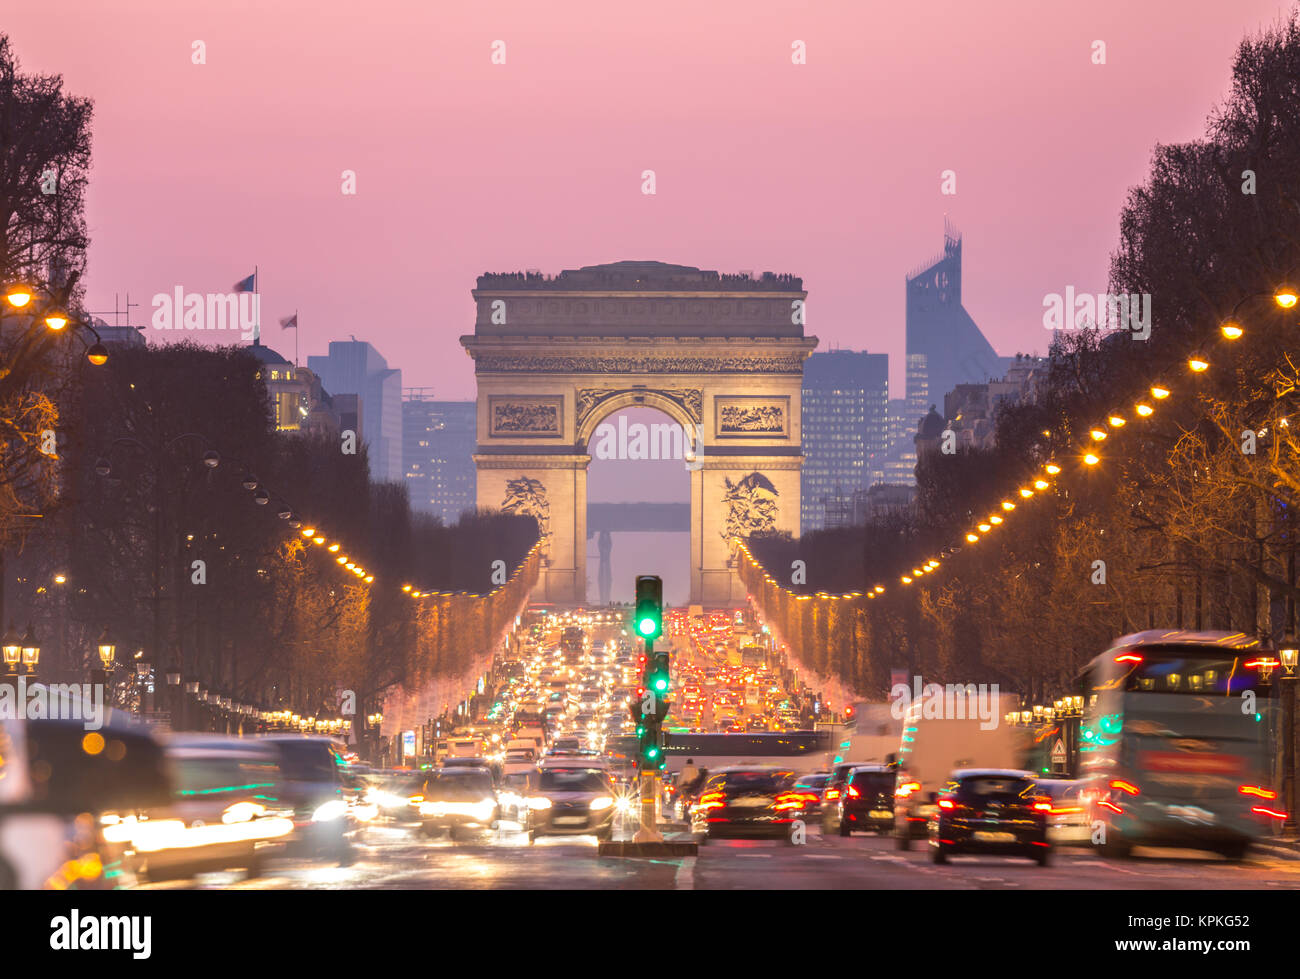 Arc de Triomphe, Champs-Elysées Paris France Photo Stock